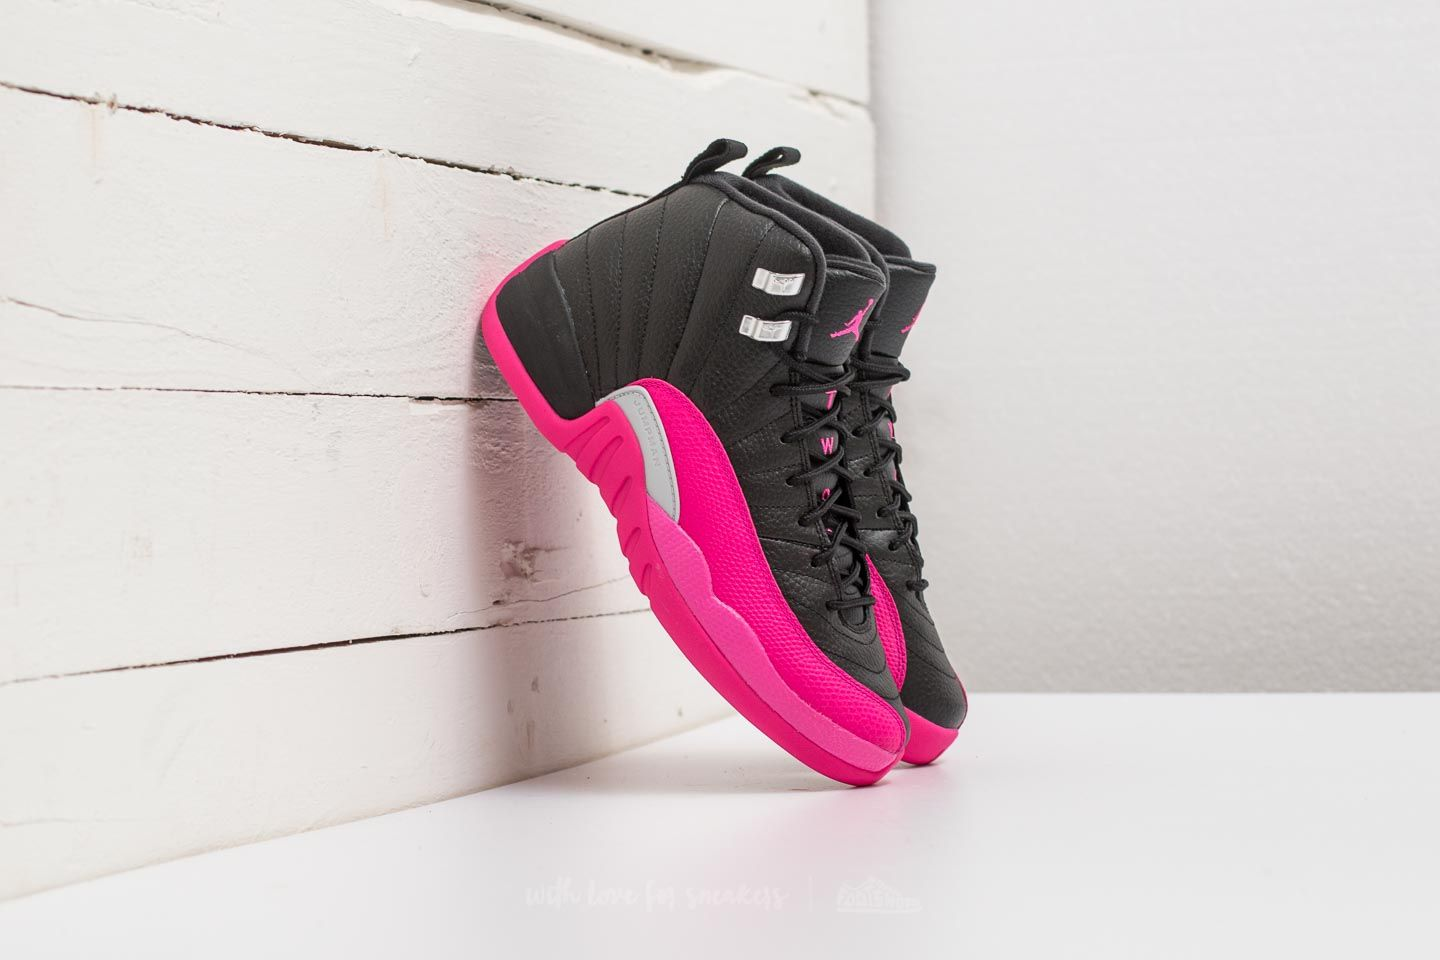 b5aef17bd5f6 Air Jordan 12 Retro GG Black  Deadly Pink